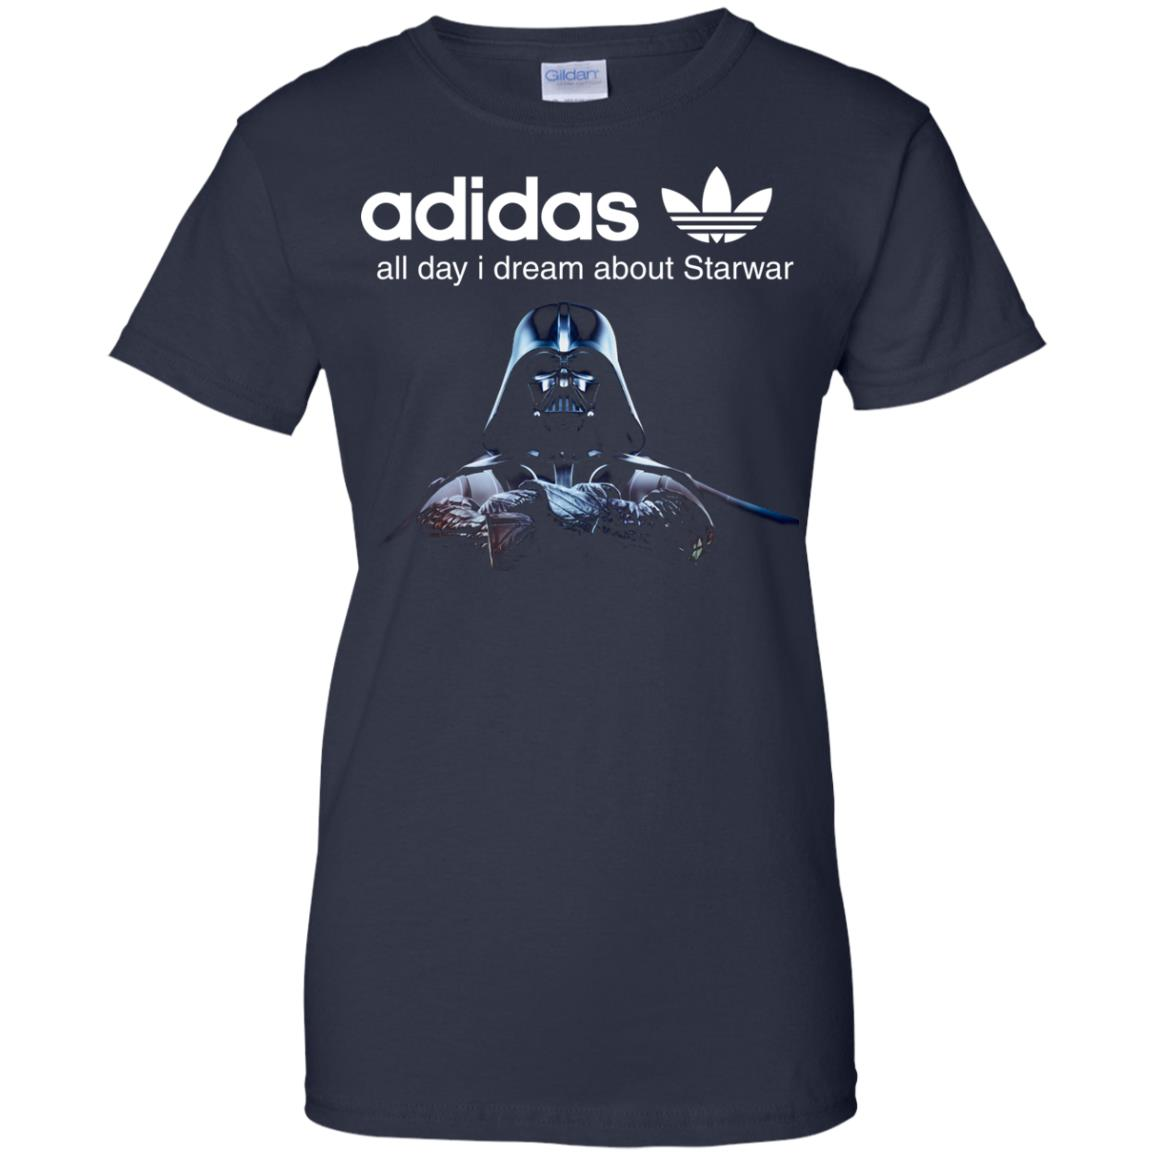 image 412px Adidas all day I dream about Starwar t shirts, hoodies, tank top